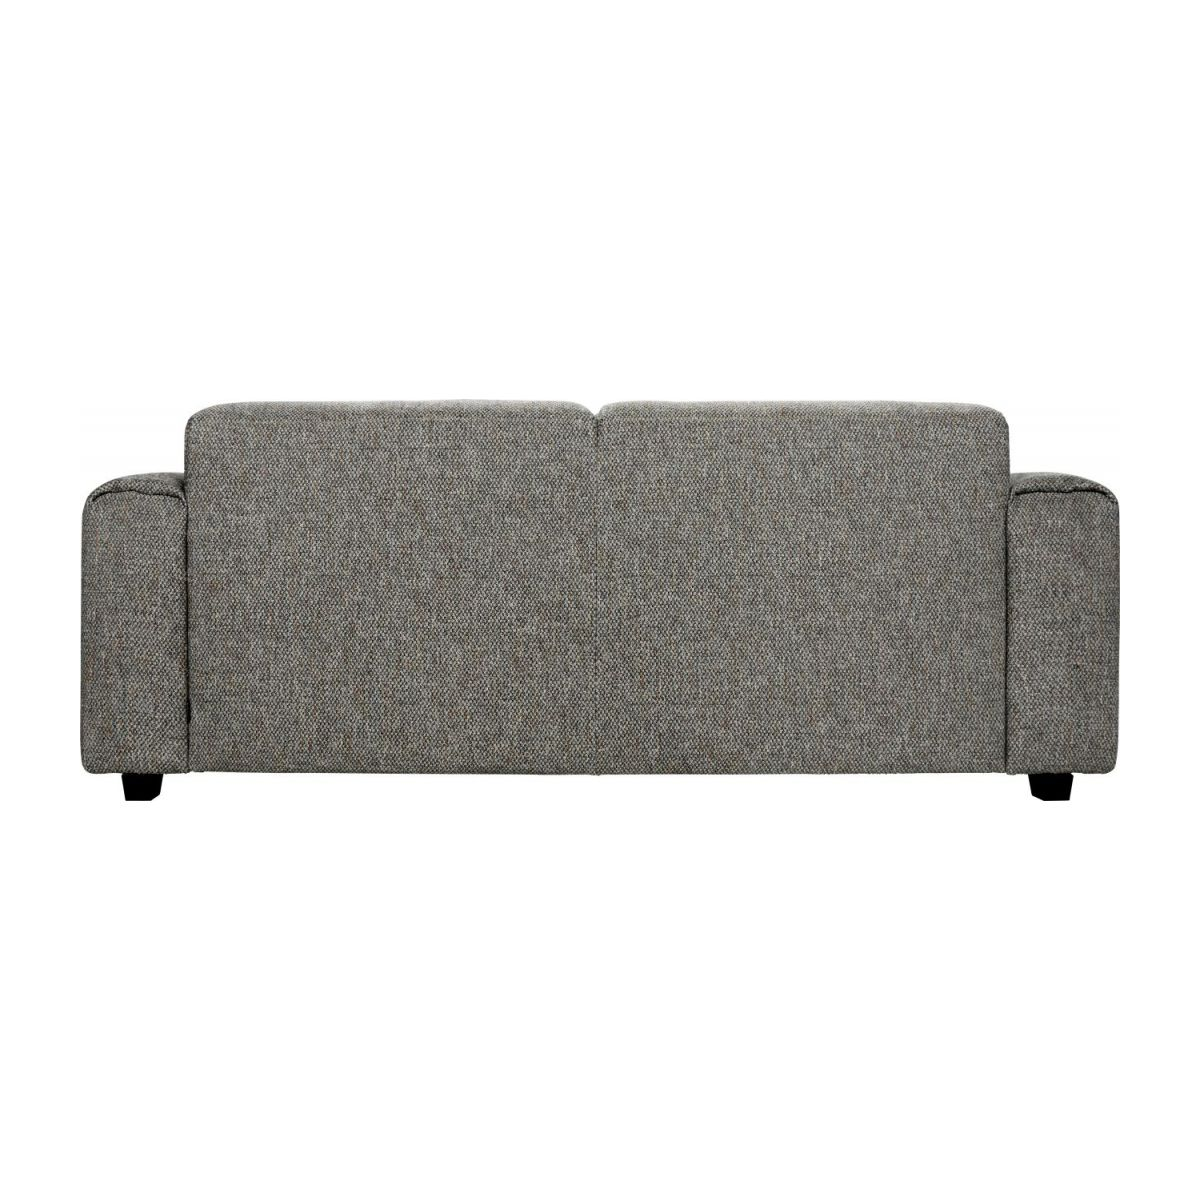 2 seater sofa in Bellagio fabric, night black n°4